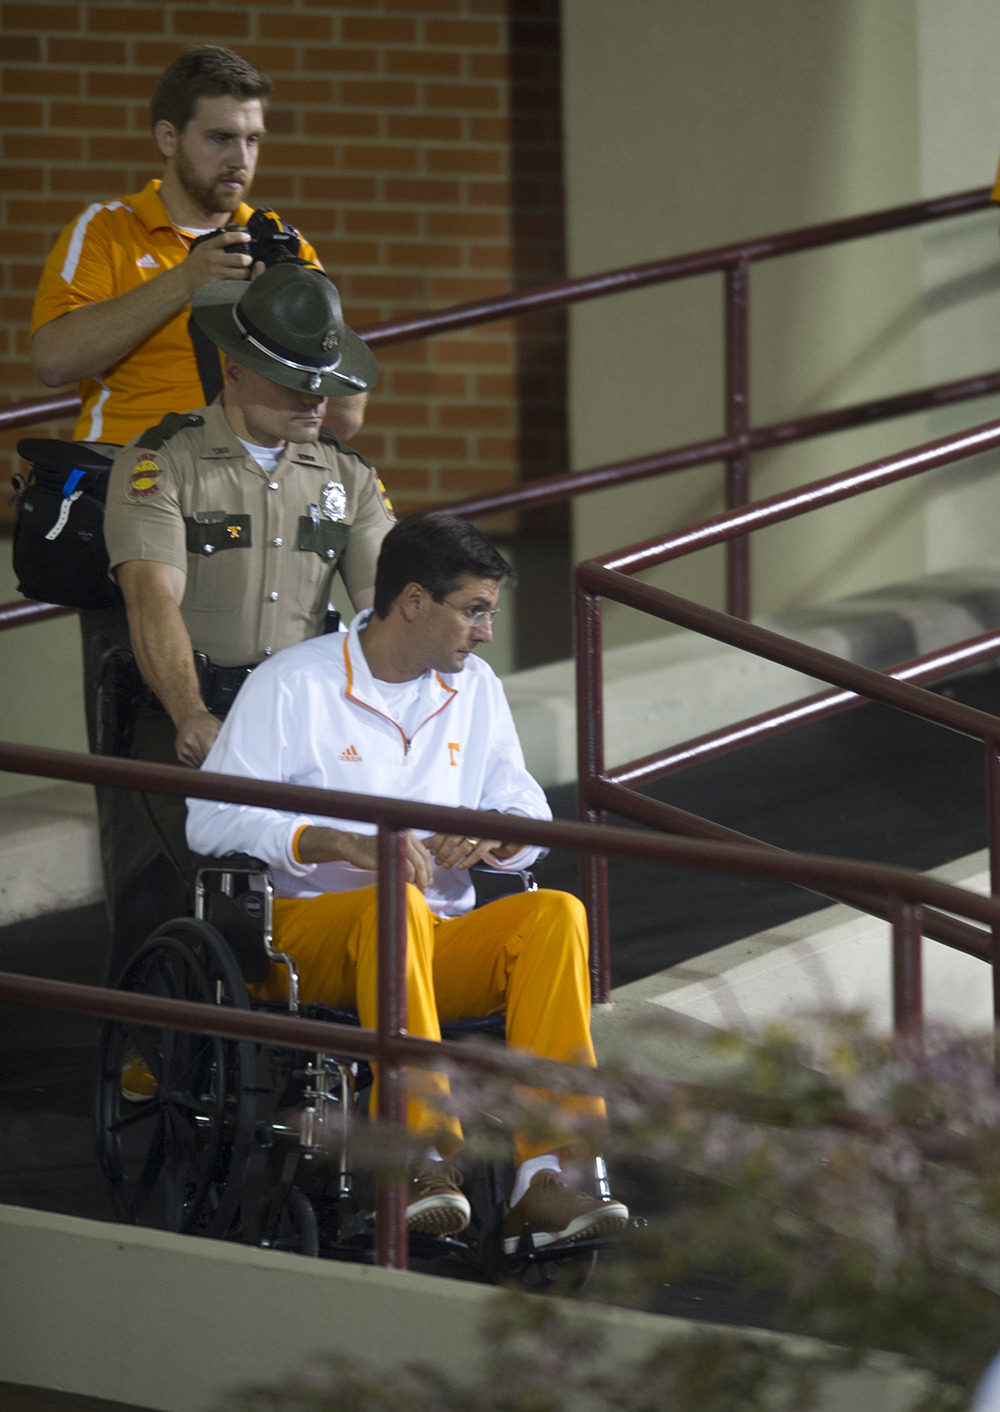 This is not my favorite photo that I shot from the Vols' game at Mississippi State last week, but it has become sports blog fodder since the game. At least three sports blogs I have seen today used this image with their posts. None of them gave proper credit and certainly did not have permission to use this copyrighted photo. Two of the blogs stated that this was taken after the game, which is incorrect.  The photo caption under this photo on www.govolsxtra.com clearly states that it was taken before the game. I digress. Mississippi State's locker rooms are situated a level above the playing field. Players and coaches descend the ramp on foot, or in a wheelchair in this case, before taking the field. Coach Dooley was escorted by this Tennessee Highway Patrol trooper as UT Athletics Department photographer Donald Page, background, photographed the scene. Coach Dooley underwent hip surgery earlier in the week and coached the game from the skybox.  Usually we try to capture the coach on the field, but in this case he was so far away in the skybox that it was nearly impossible to get a photo of him. Moments like this one before the game had to suffice as our only art of Coach Dooley from the game.